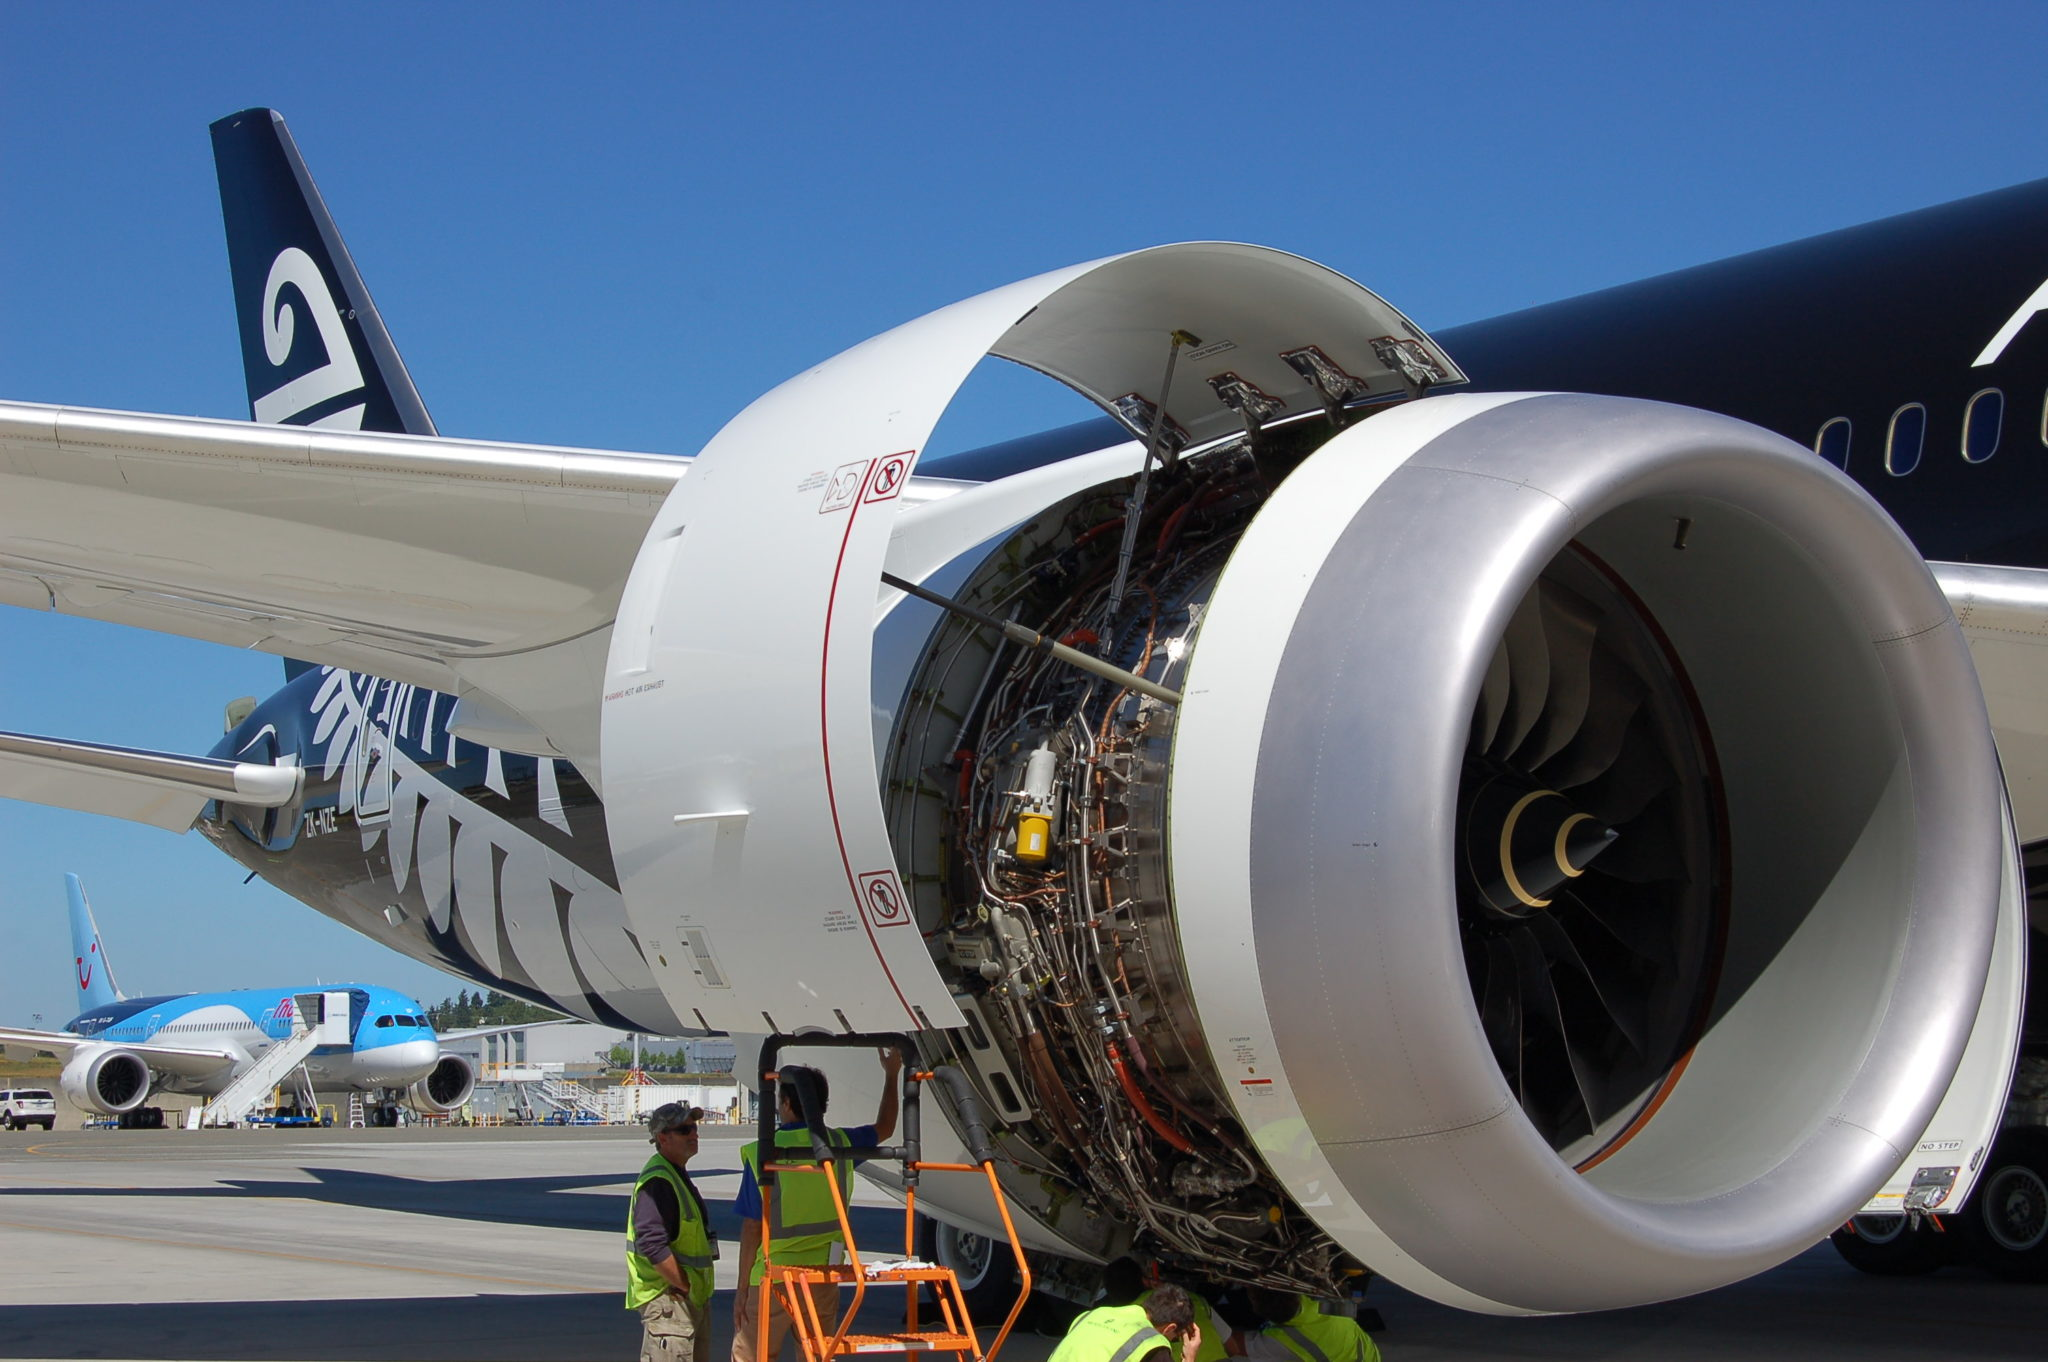 The Air New Zealand is powered by the Rolls-Royce Trent 1000 engine.